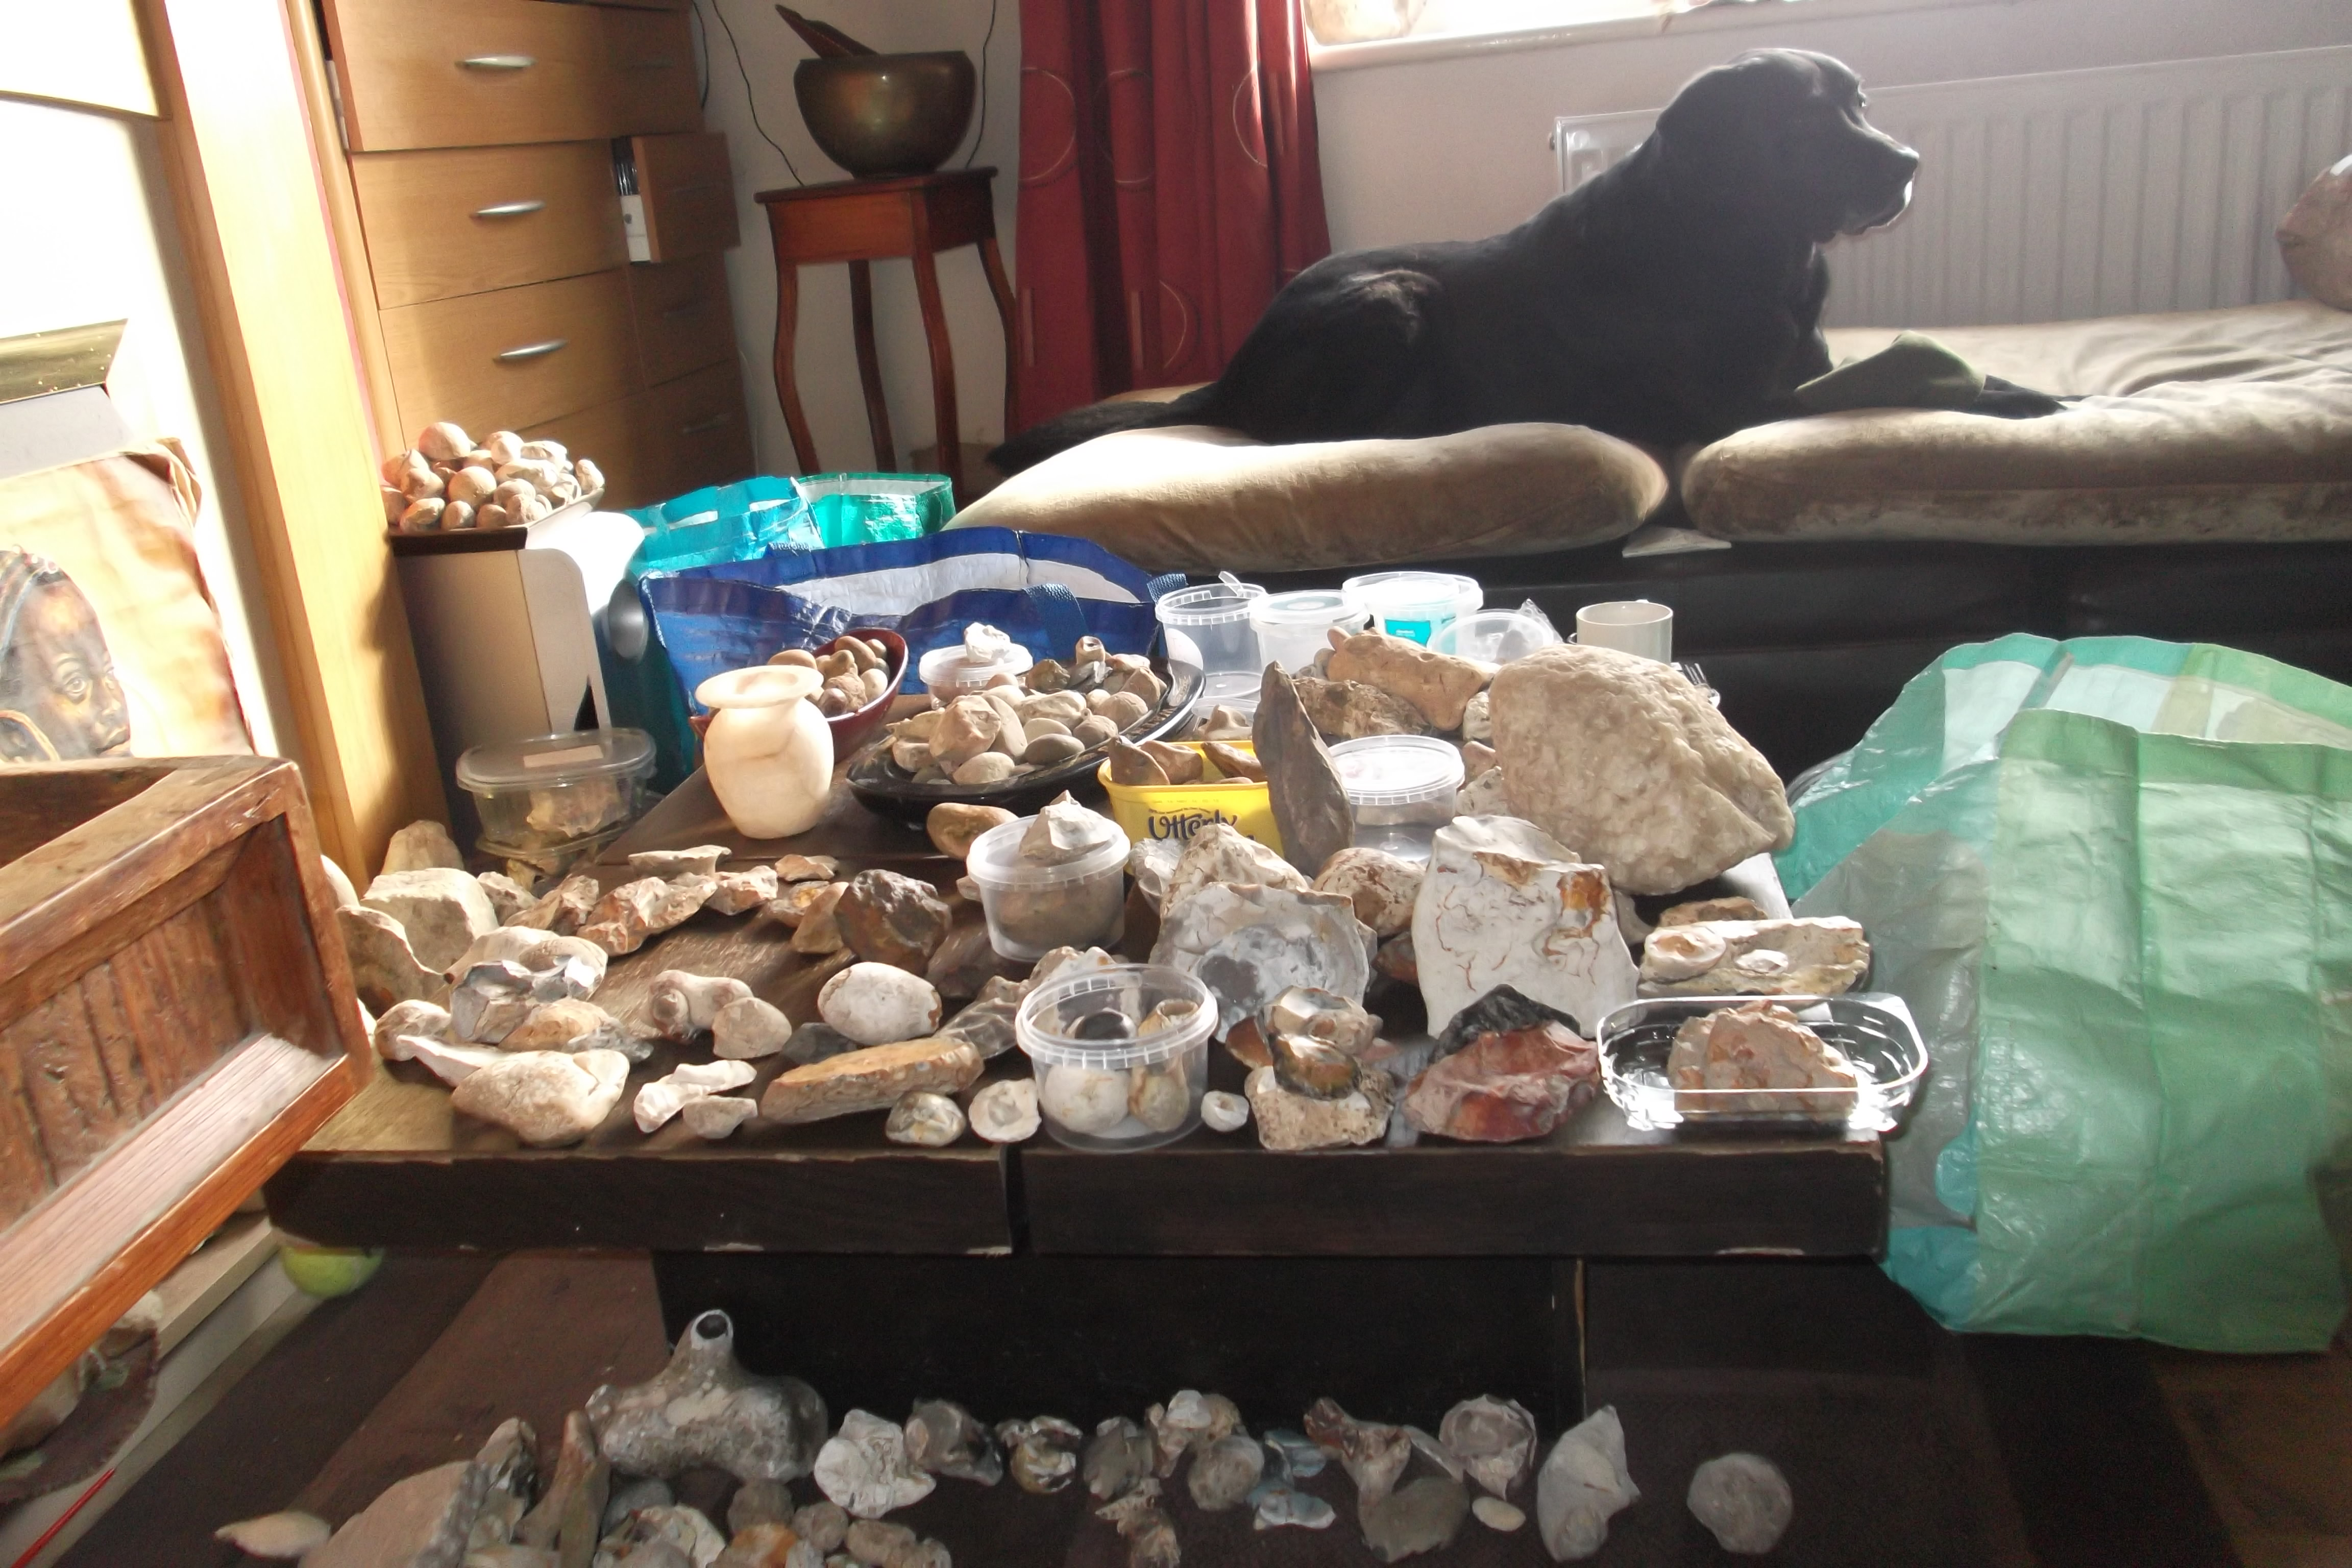 Finds collection